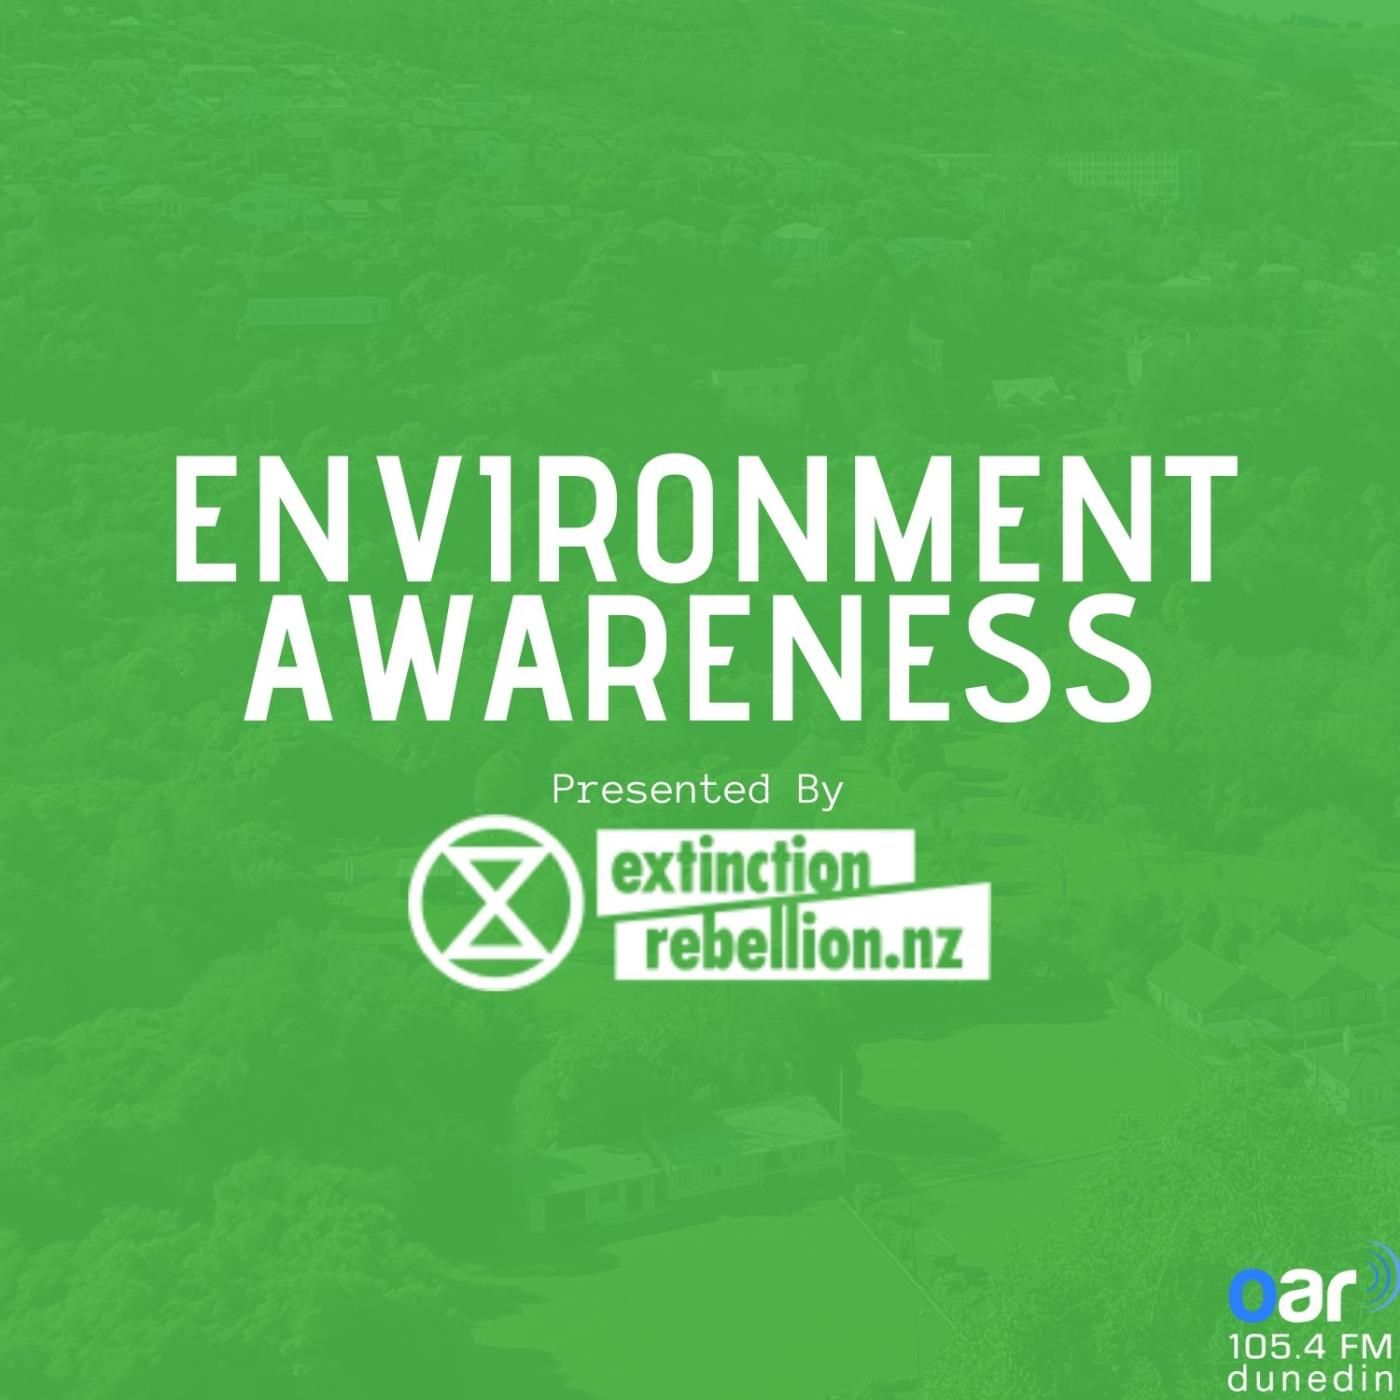 Environment Awareness - 20-08-2020 - Show 46 - Prof. Jim Flynn